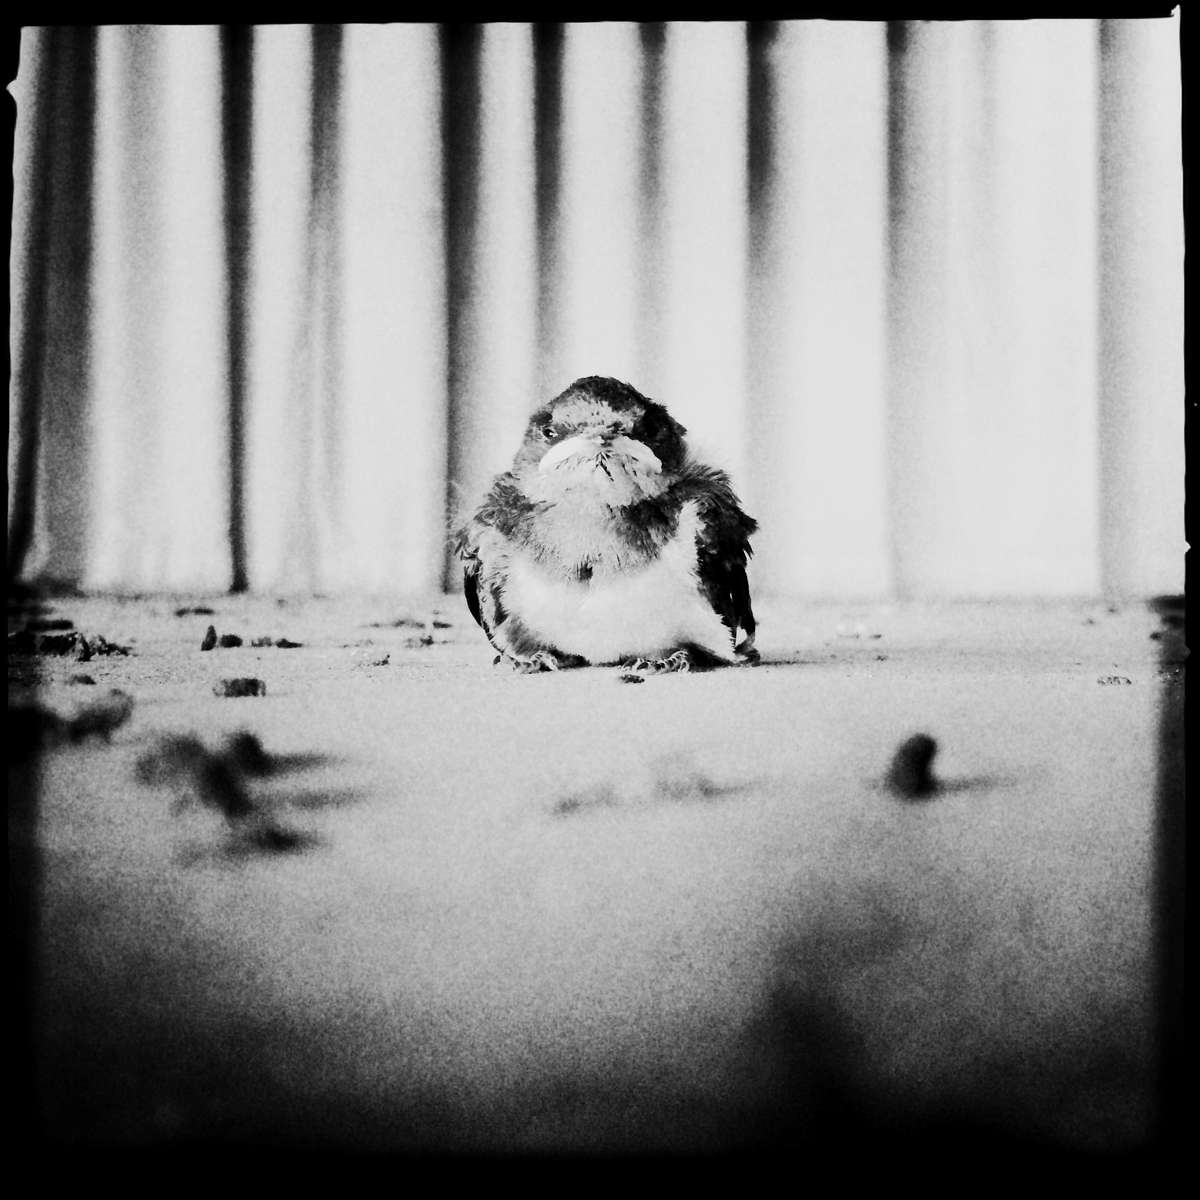 Fukushima: Today I found a baby swallow at the altar at an abandoned elementary school in Ukedo, a highly restricted area in Fukushima. I don't know why she was out of her nest. She was seemingly fine, even somehow friendly. But I have to tell that she is living in a radiation-contaminated food chain due to the 2011 Fukushima nuke power plant disaster. And nobody knows how long such a dangerous food chain continues. #badyswallow #swallow #bird #food_chain #ukedo #radiation #radiation_food_chain #fukushima